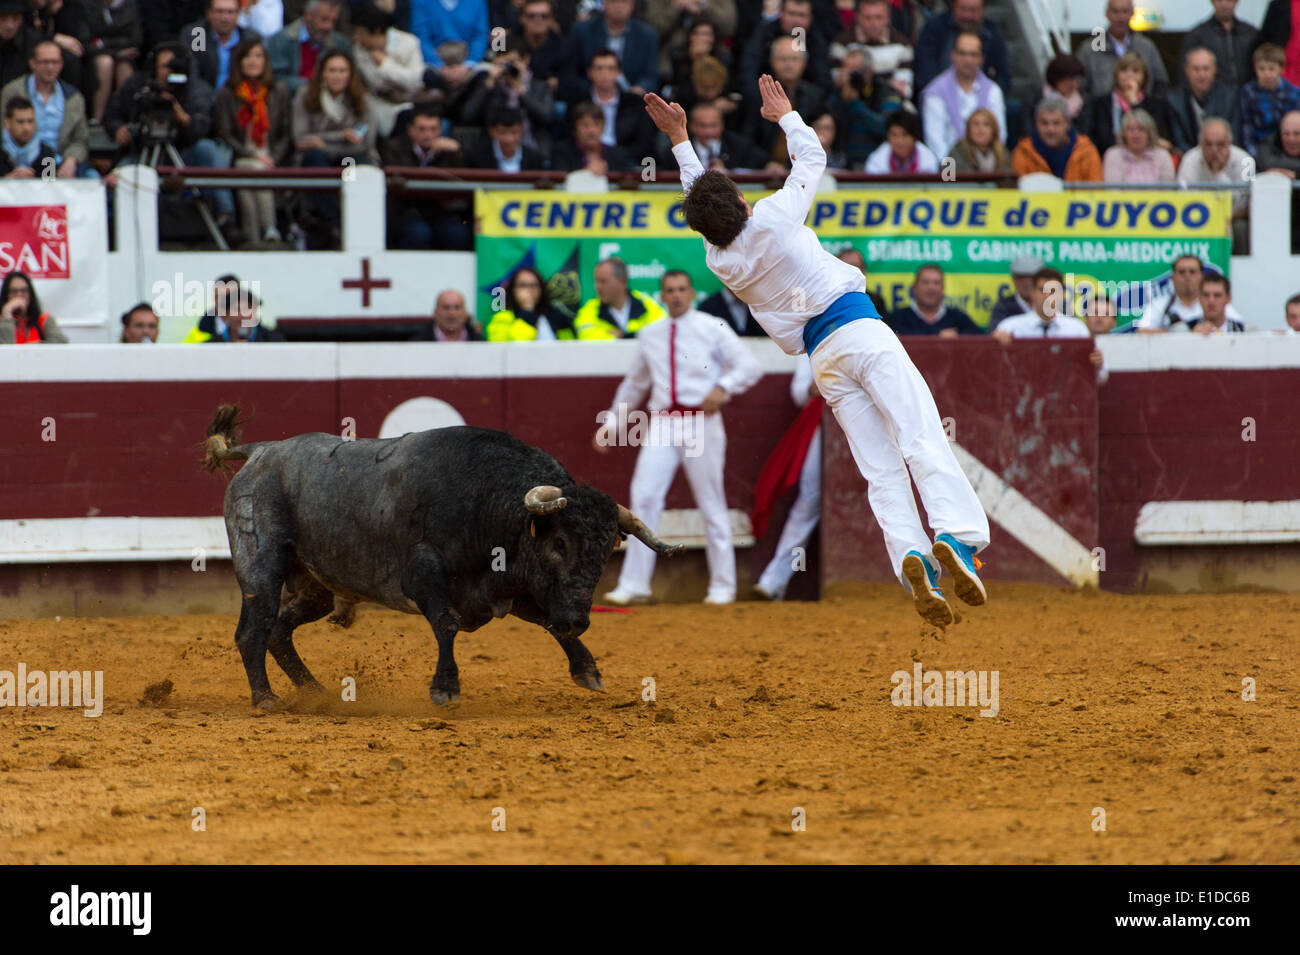 """Dax, Aquitaine, France, 31 May 2014: Competitors dodge, weave and vault charging bulls in the """"Course Landaise"""" Stock Photo"""